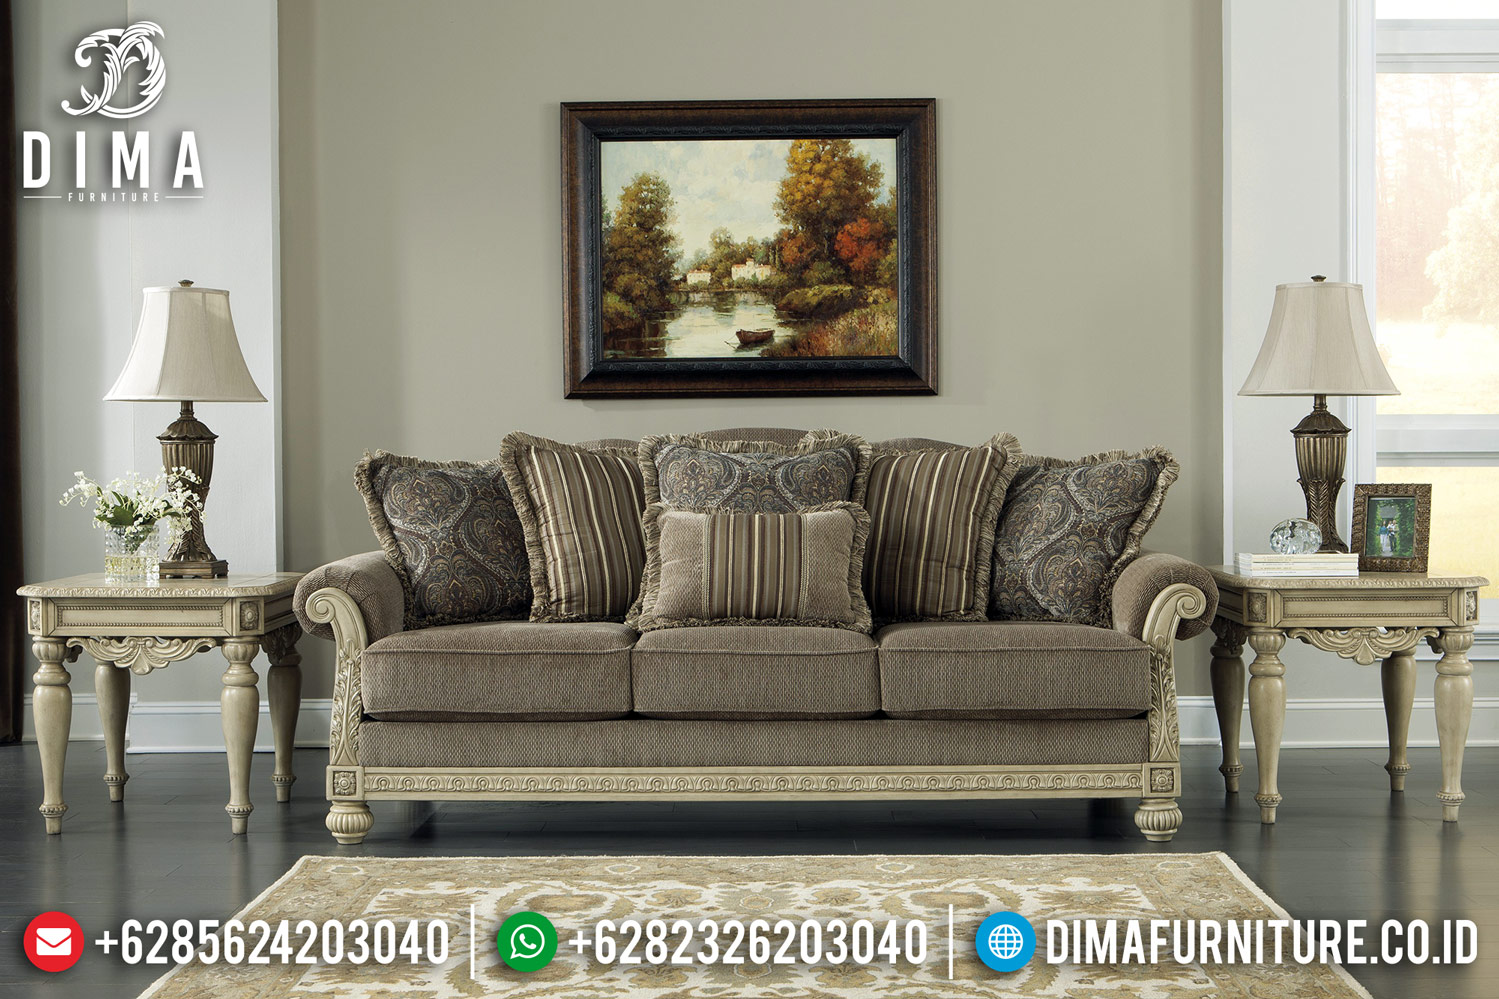 New Sofa Tamu Mewah White Ivory Duco Furniture Luxury Carving Jepara BT-0410